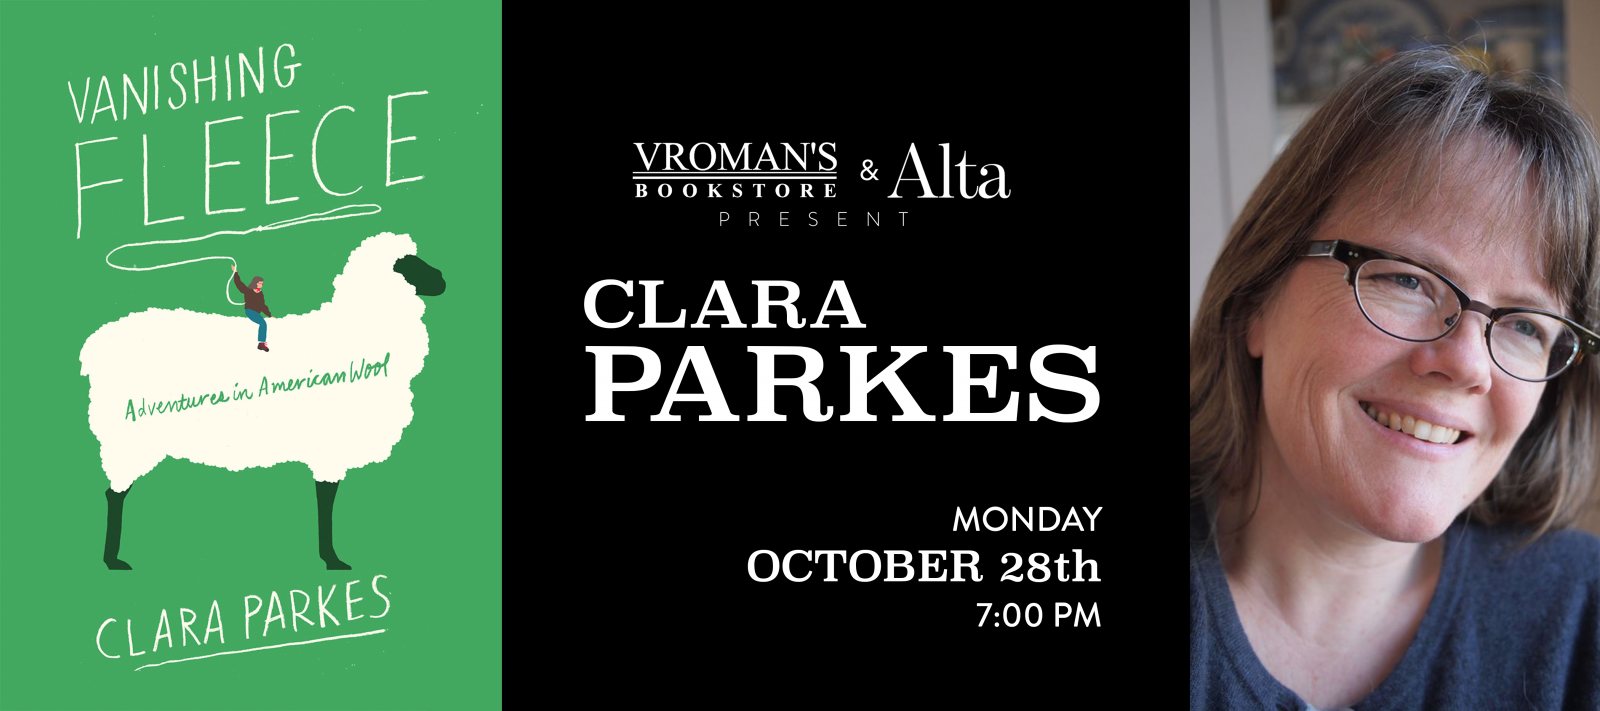 Clara Parkes book signing Monday October 28 at 7pm